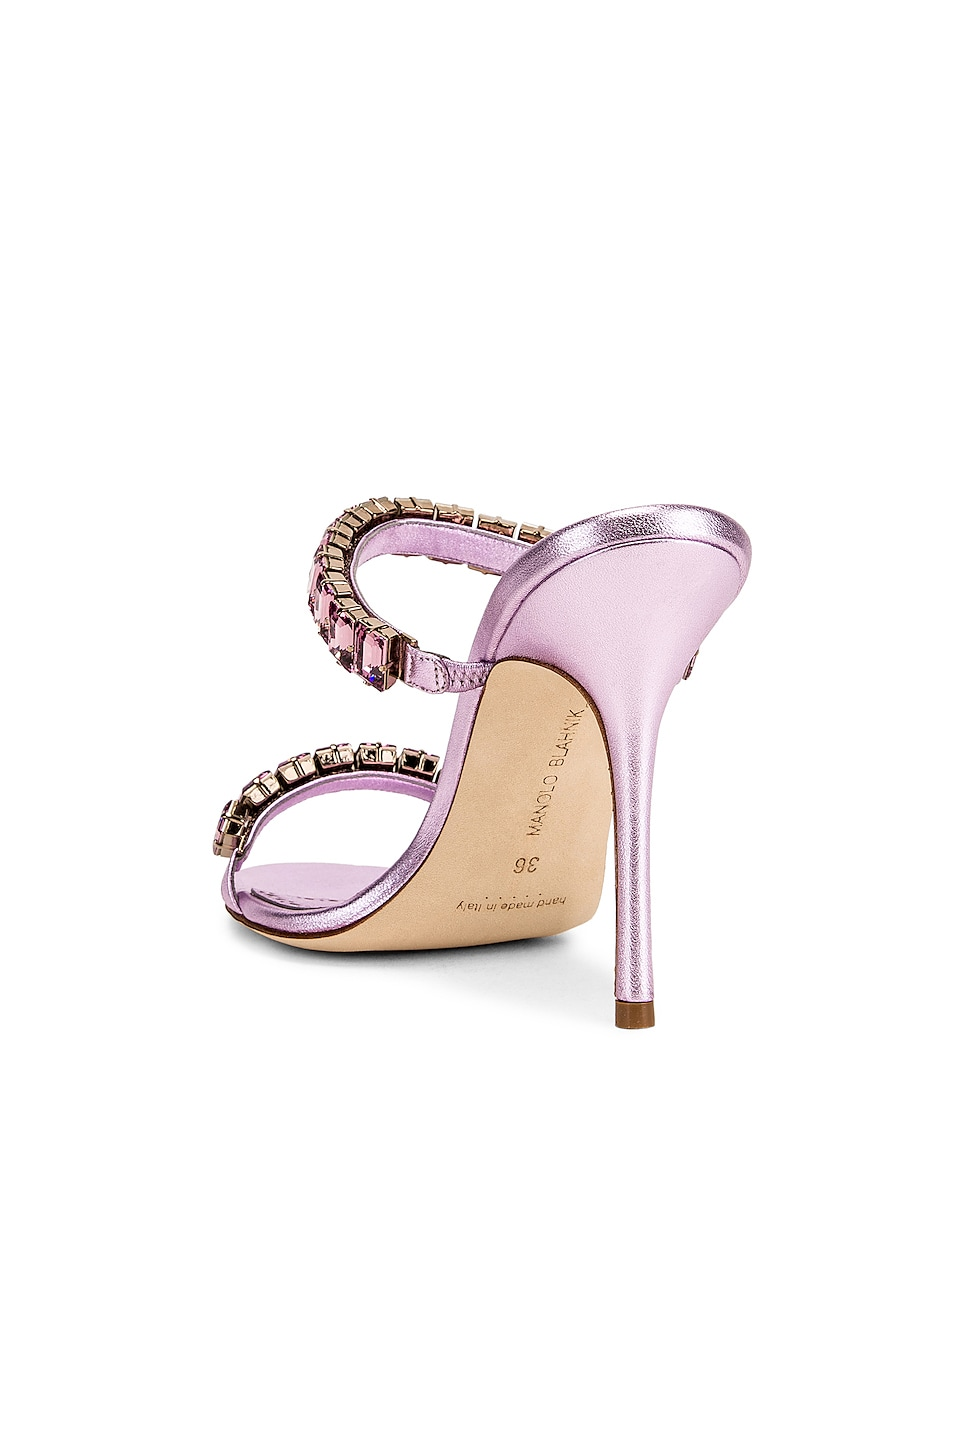 Image 3 of Manolo Blahnik for FWRD Dallitre 105 Sandal in Light Pink Nappa